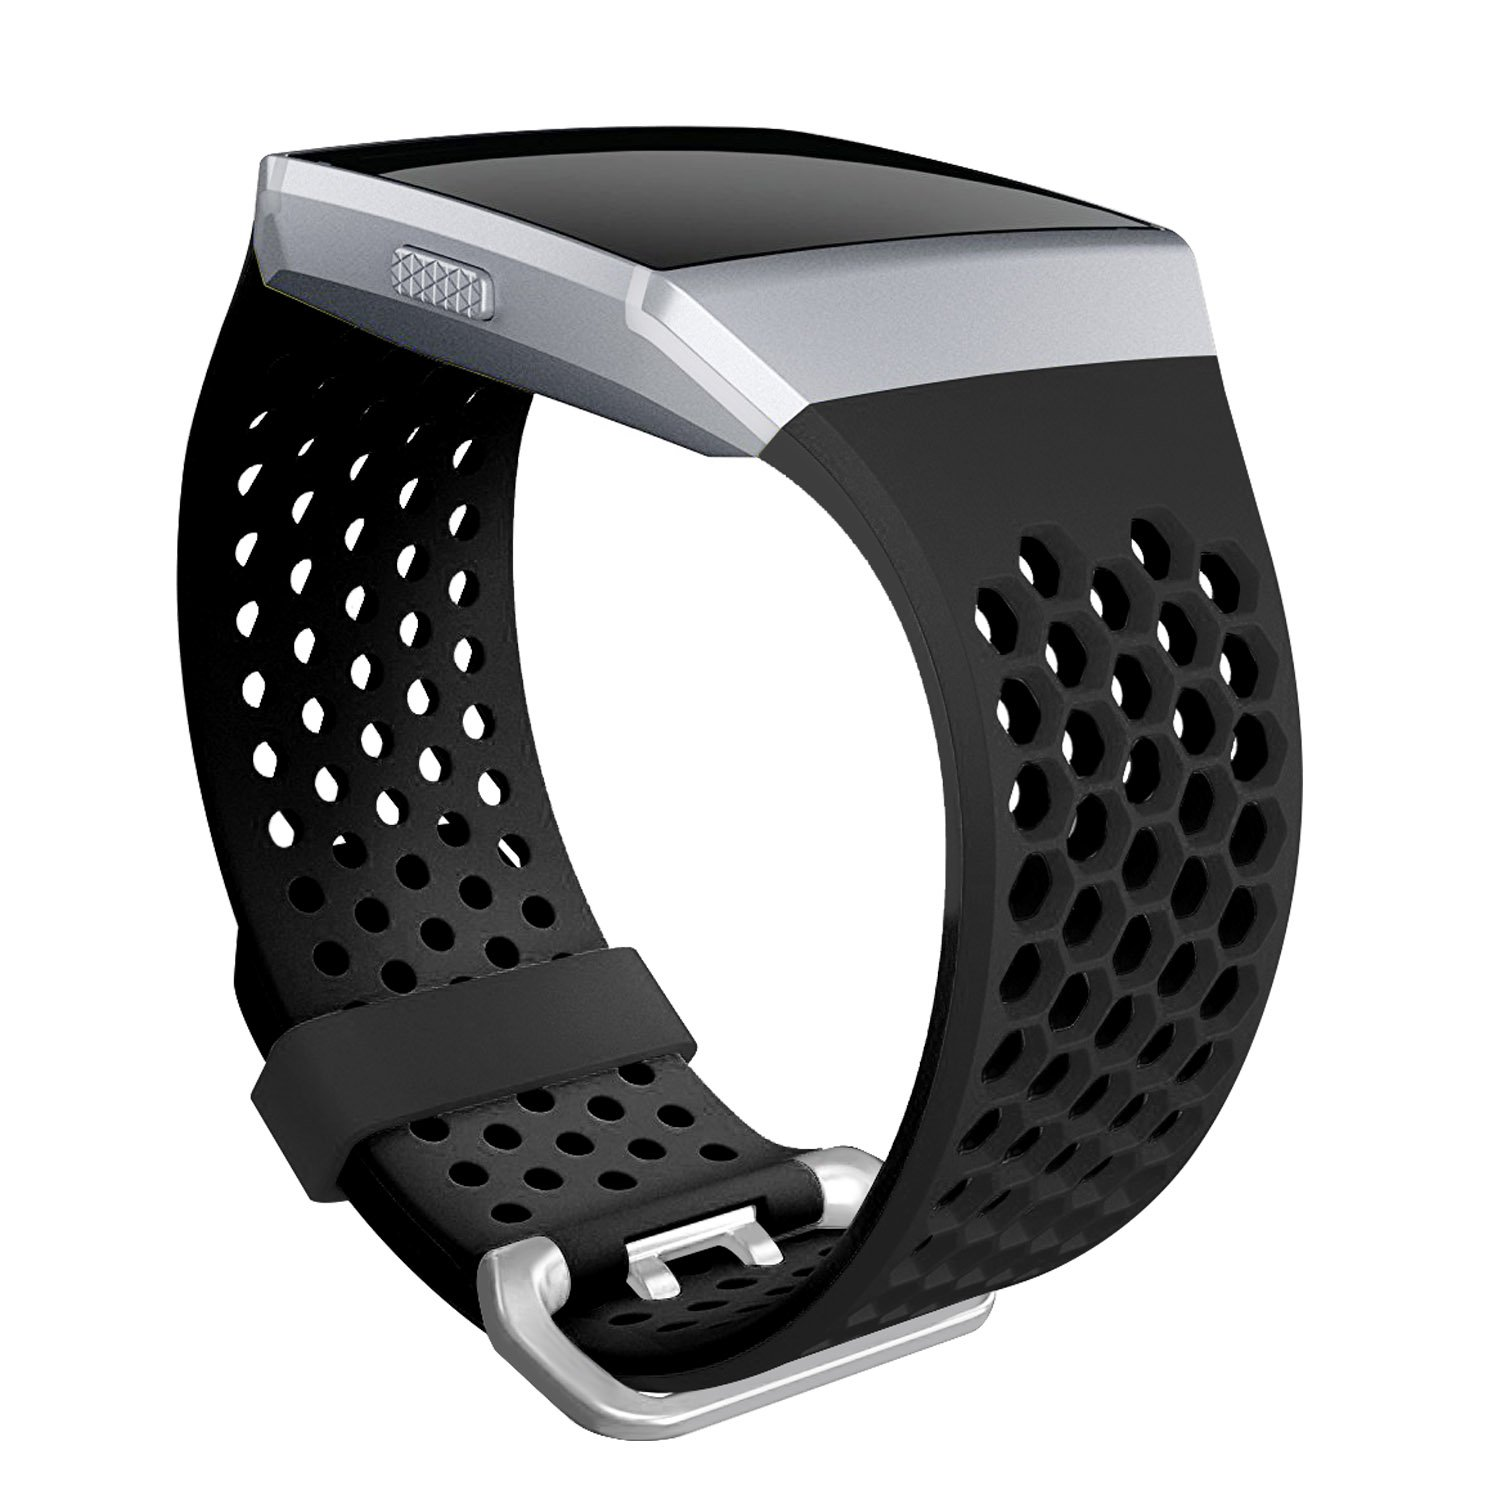 SKYLET Compatible with Fitbit Ionic Bands, Soft Silicone Breathable Replacement Sport Wristband Compatible Fitbit Ionic Smartwatch (No Tracker)